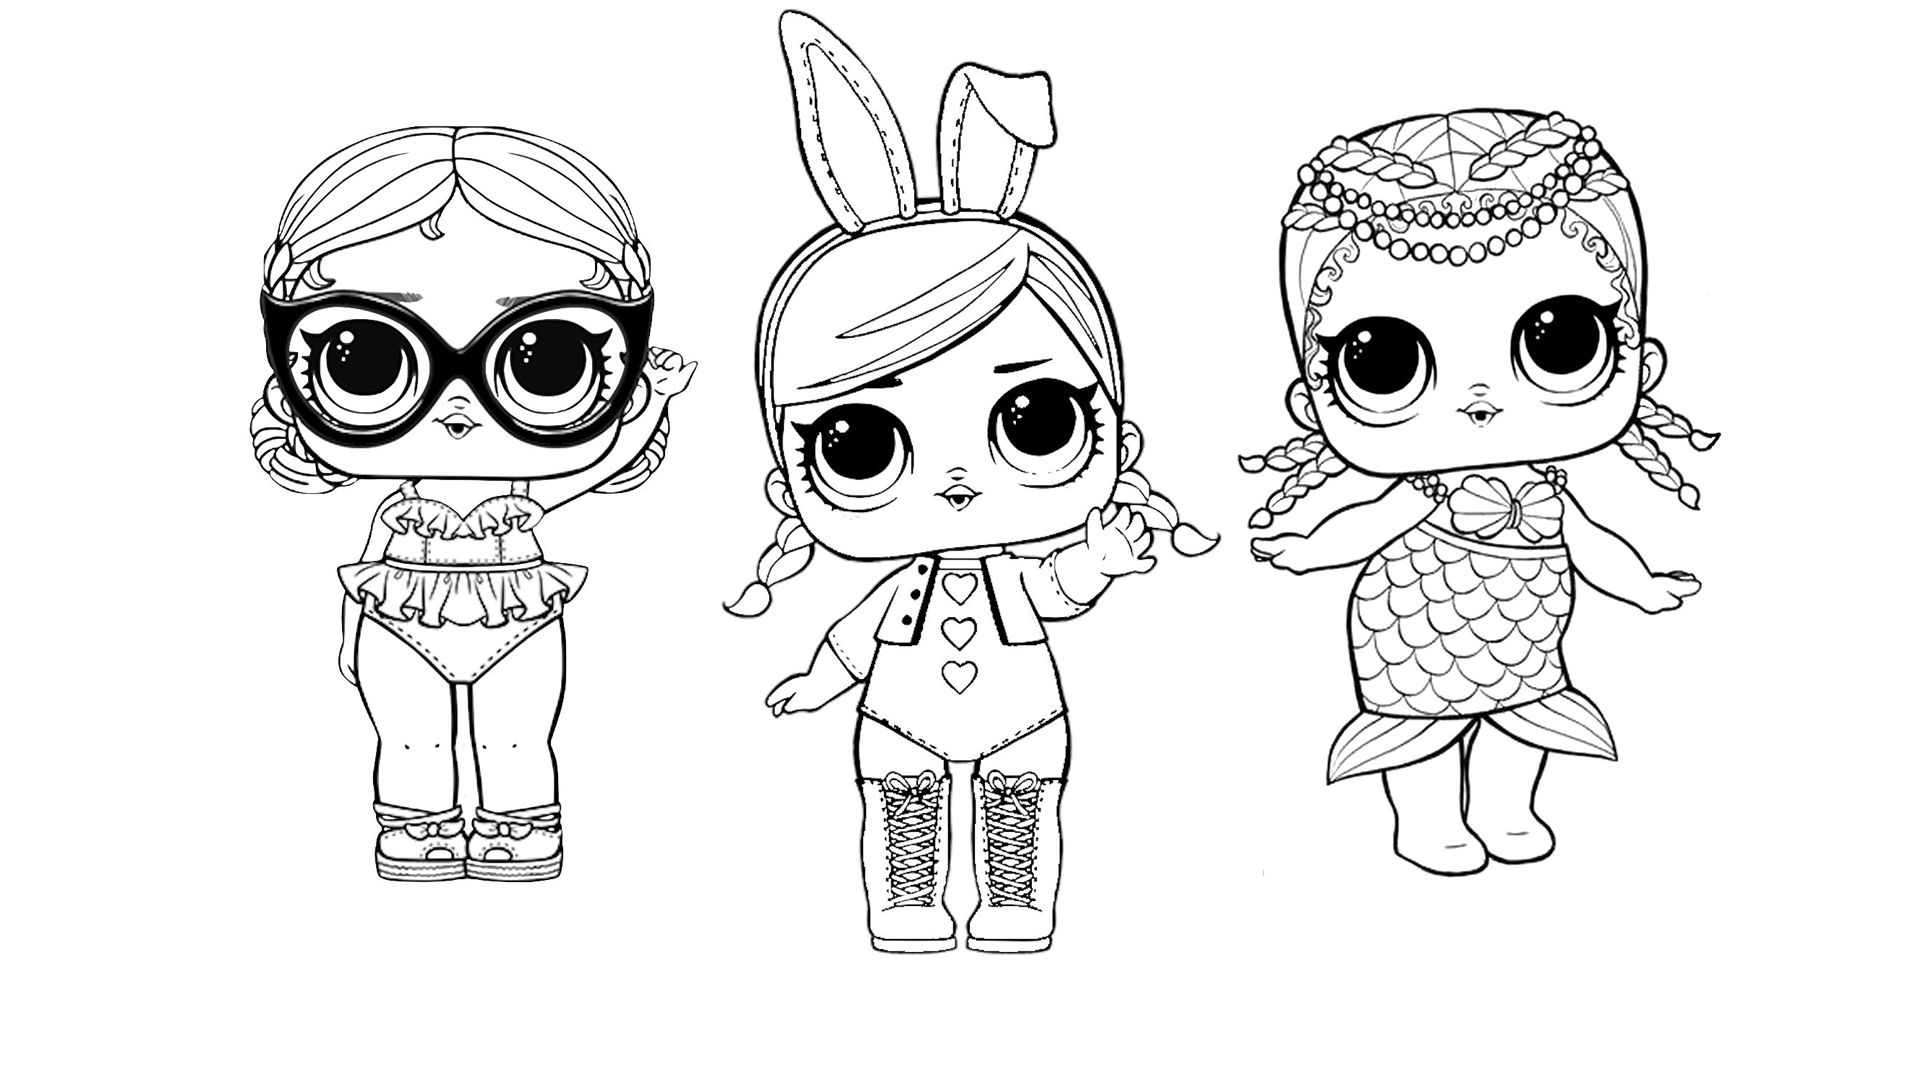 Hi It S Lol Surprise Dolls Coloring Book Compilation I Will Colour Lol Surprise Dolls Vacay Baby Hops An Coloring Books Cute Coloring Pages Coloring Pages